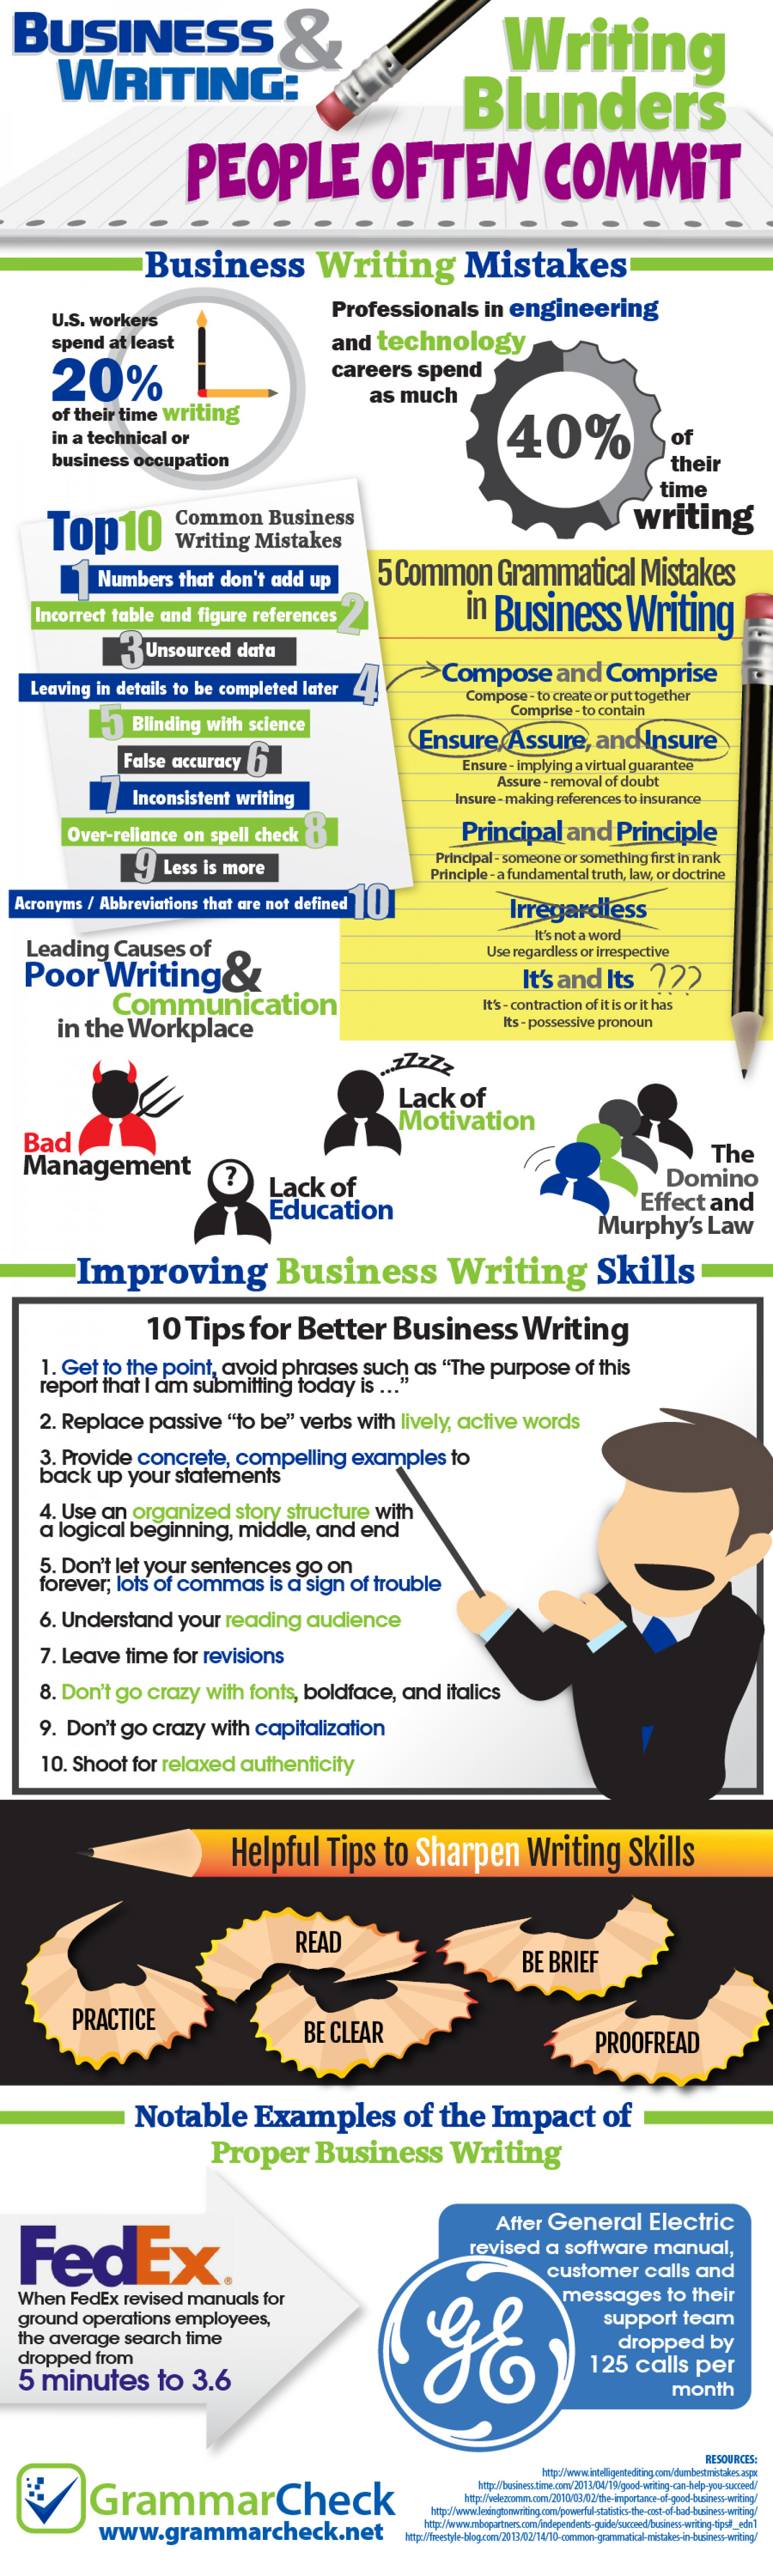 Business and Writing: Writing Blunders People Often Commit Infographic